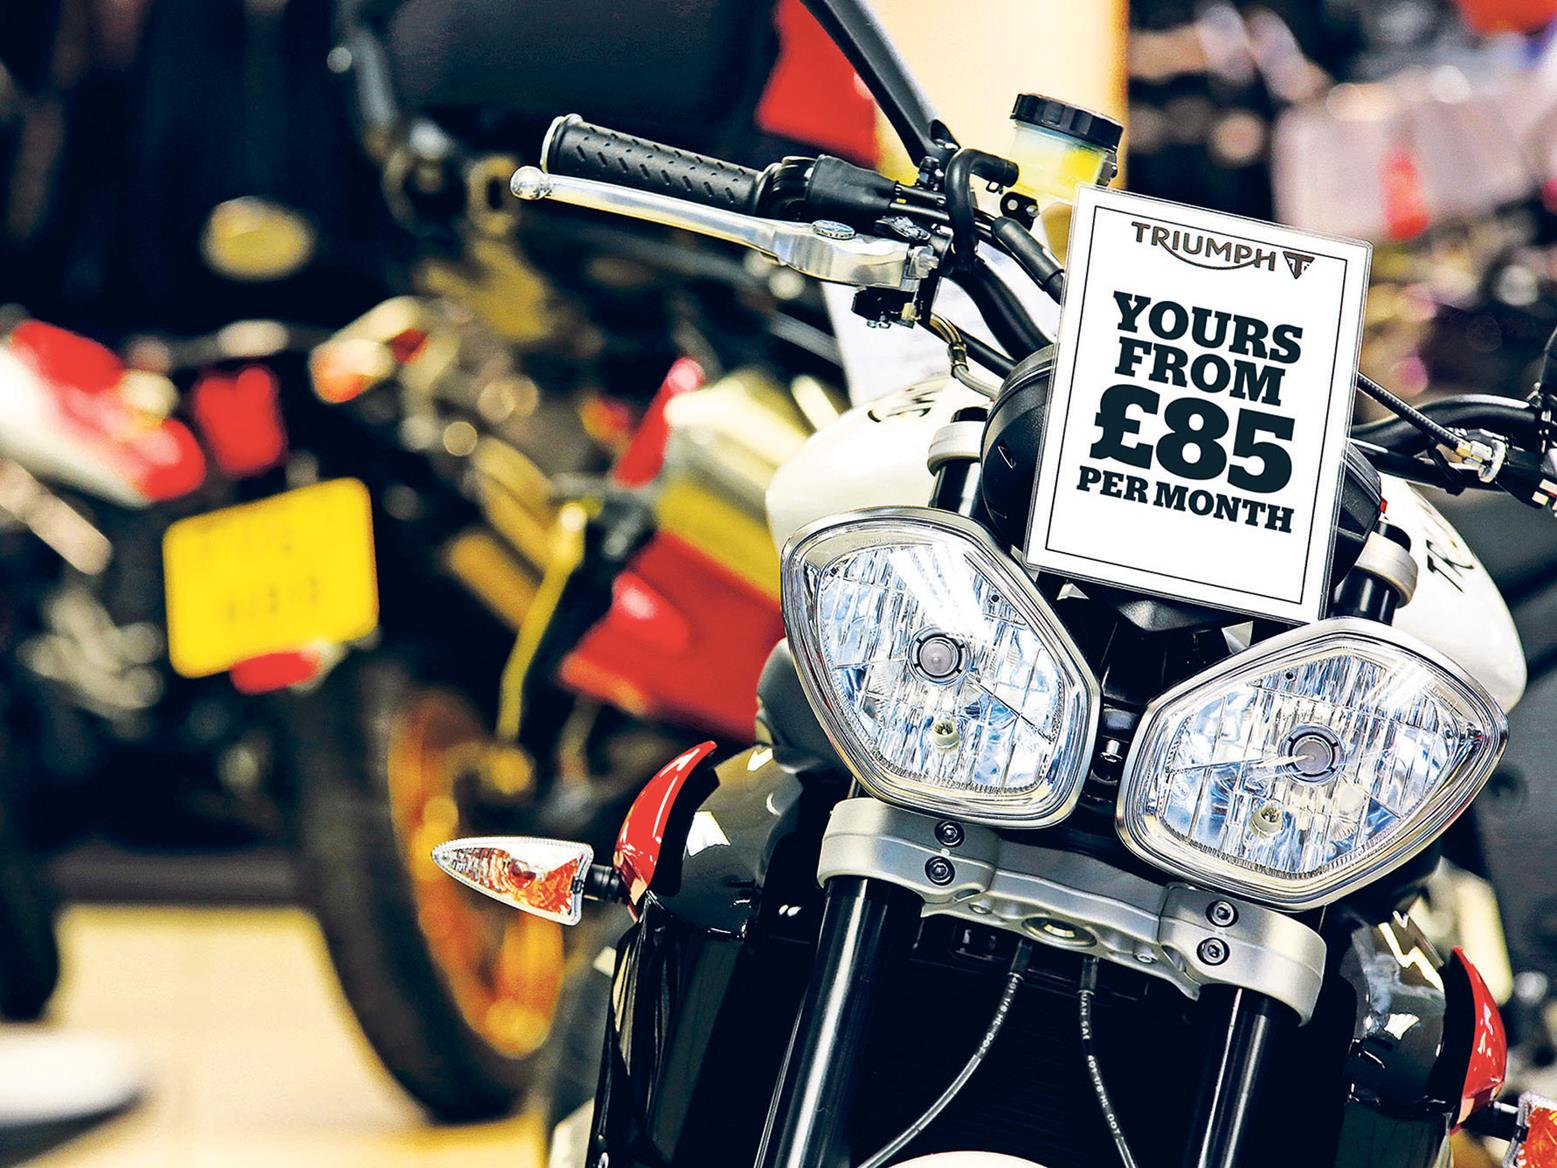 PCP, HP, credit card or loan? Motorbike finance explained